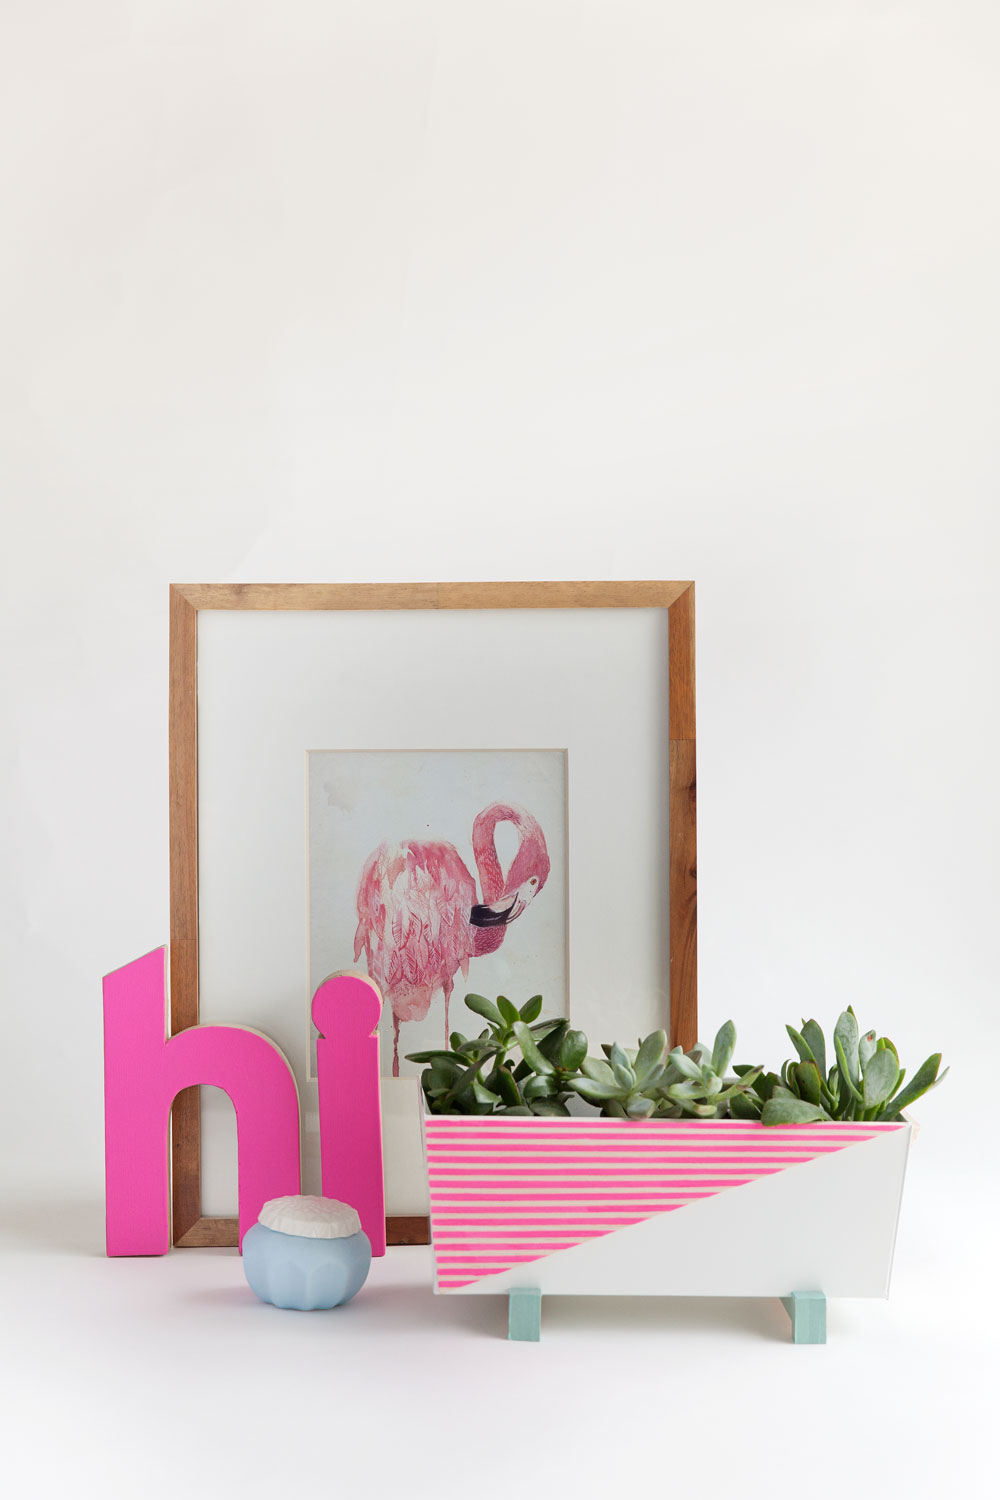 IKEA Hacks für den Sommer: Indoor Blumenkiste mit Muster - Tell Love and Party